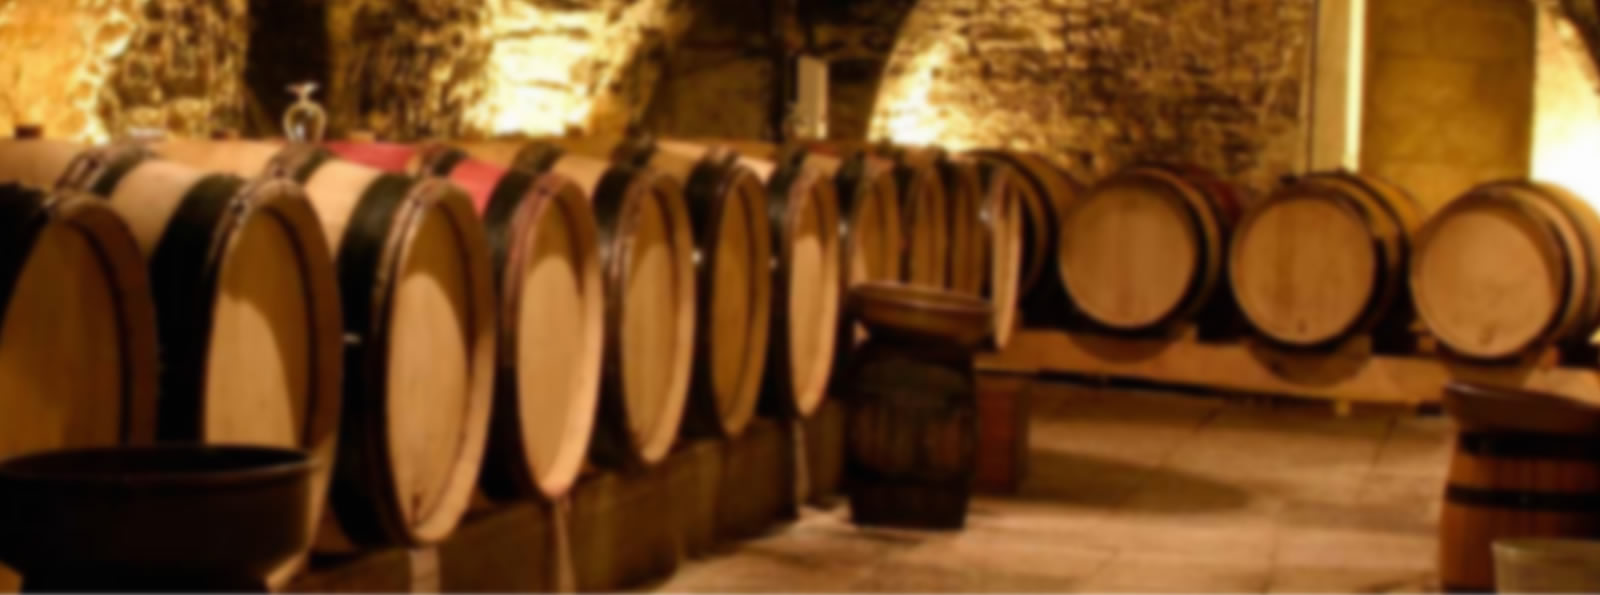 Wine tours in Bulgaria, wine tourism and wine tastings